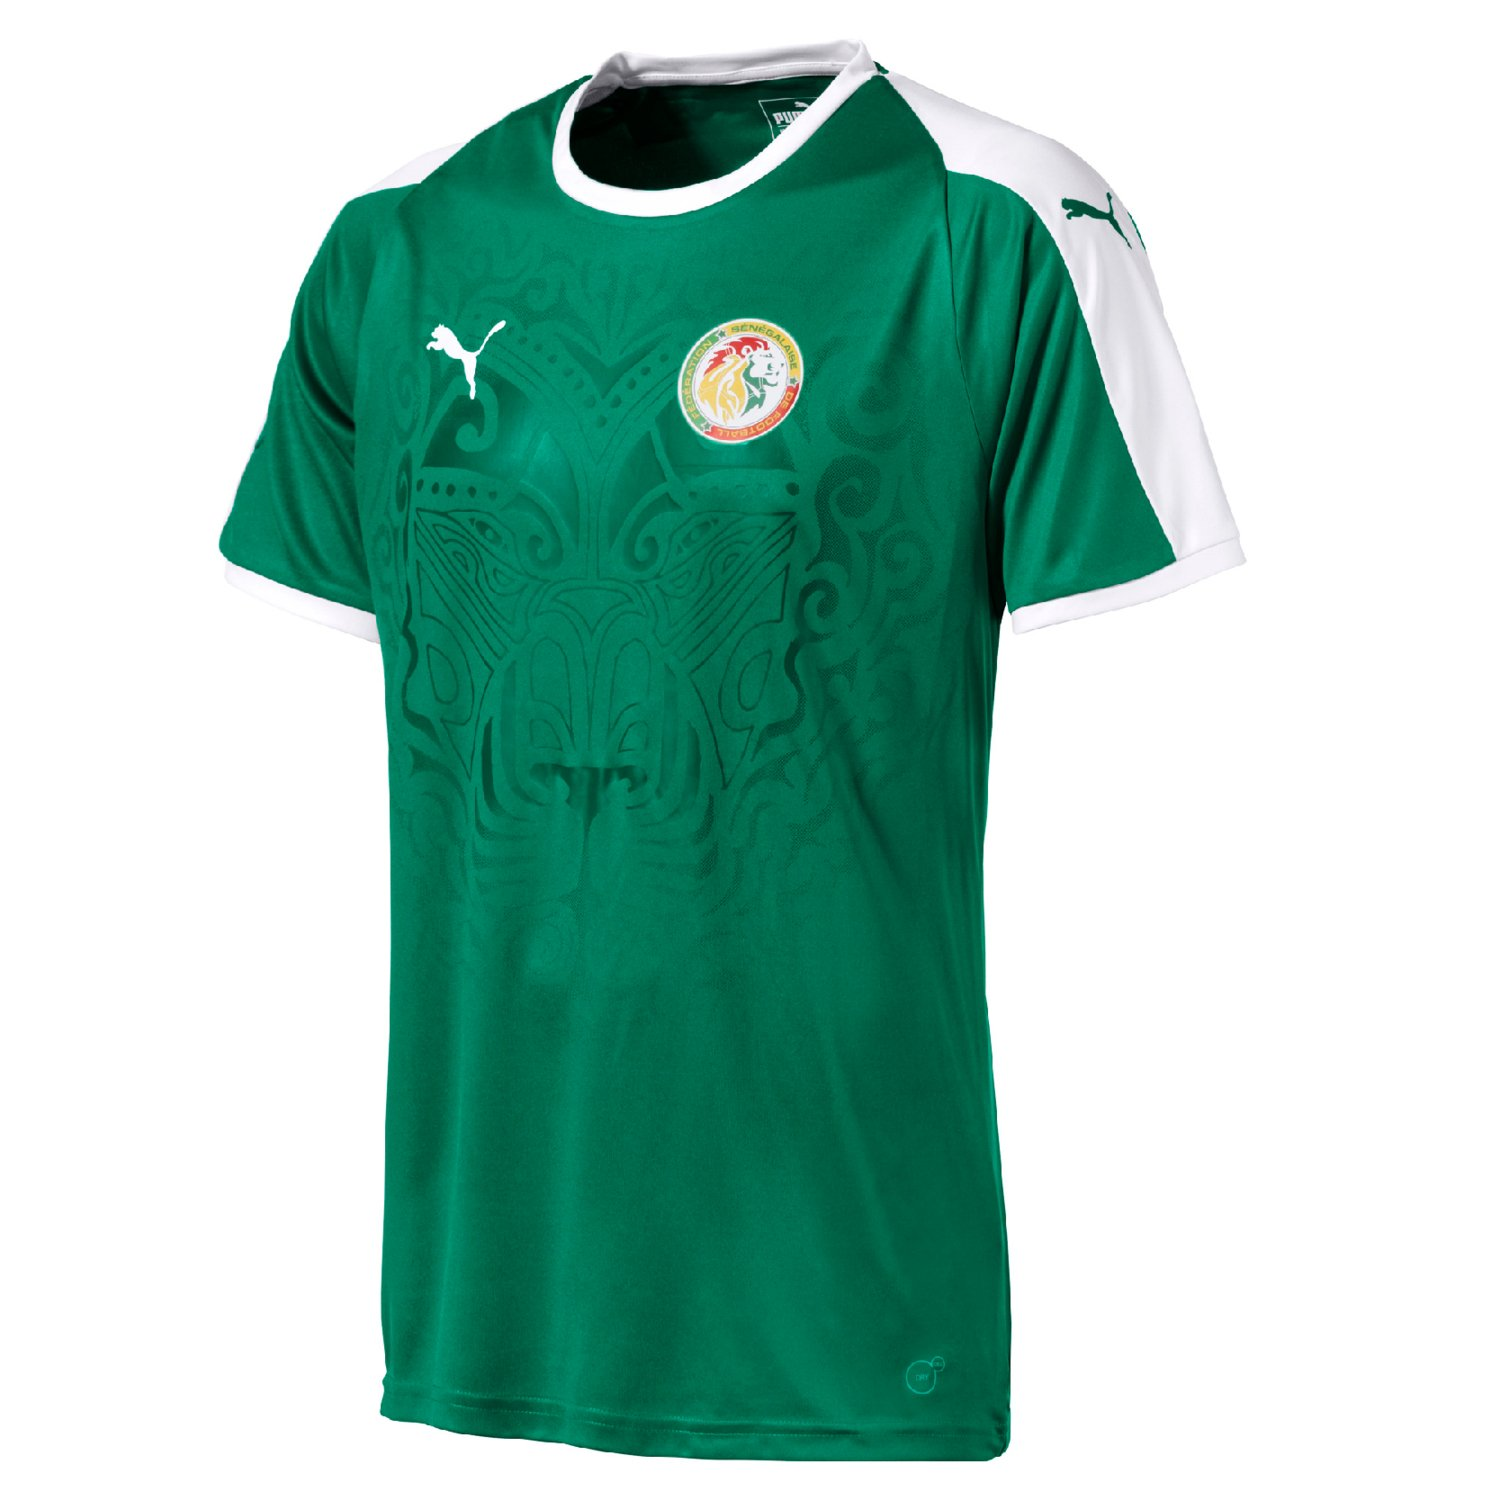 2018-2019 Senegal Away Puma Football Shirt B07CQ7K5ZB グリーン Small